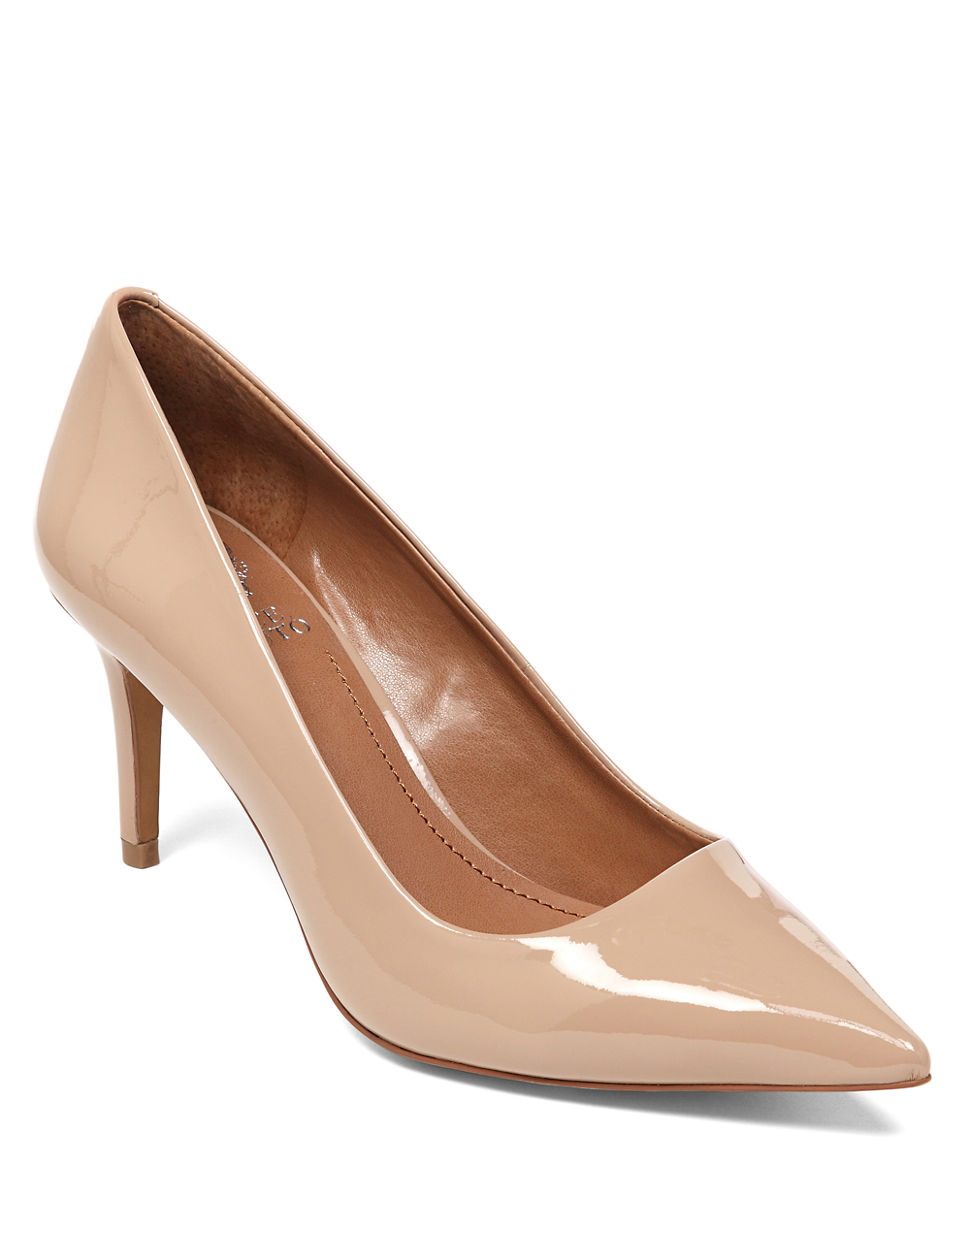 Vince Camuto Cassina Patent Leather Pumps In Beige Beige